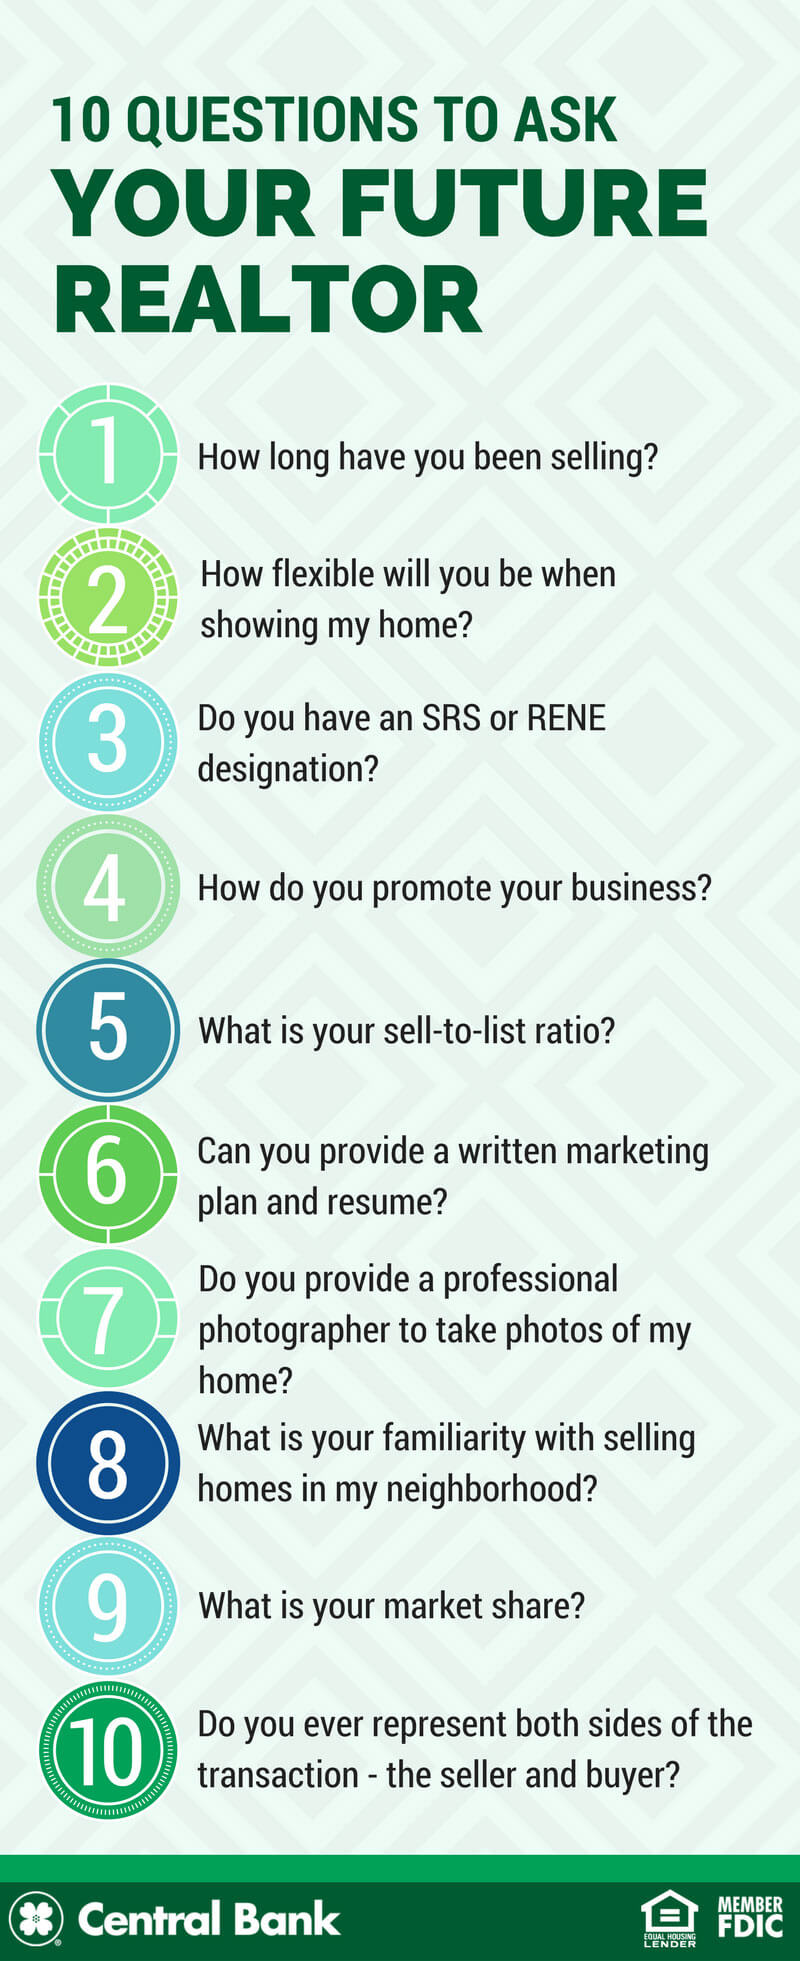 10 questions to ask your future realtor